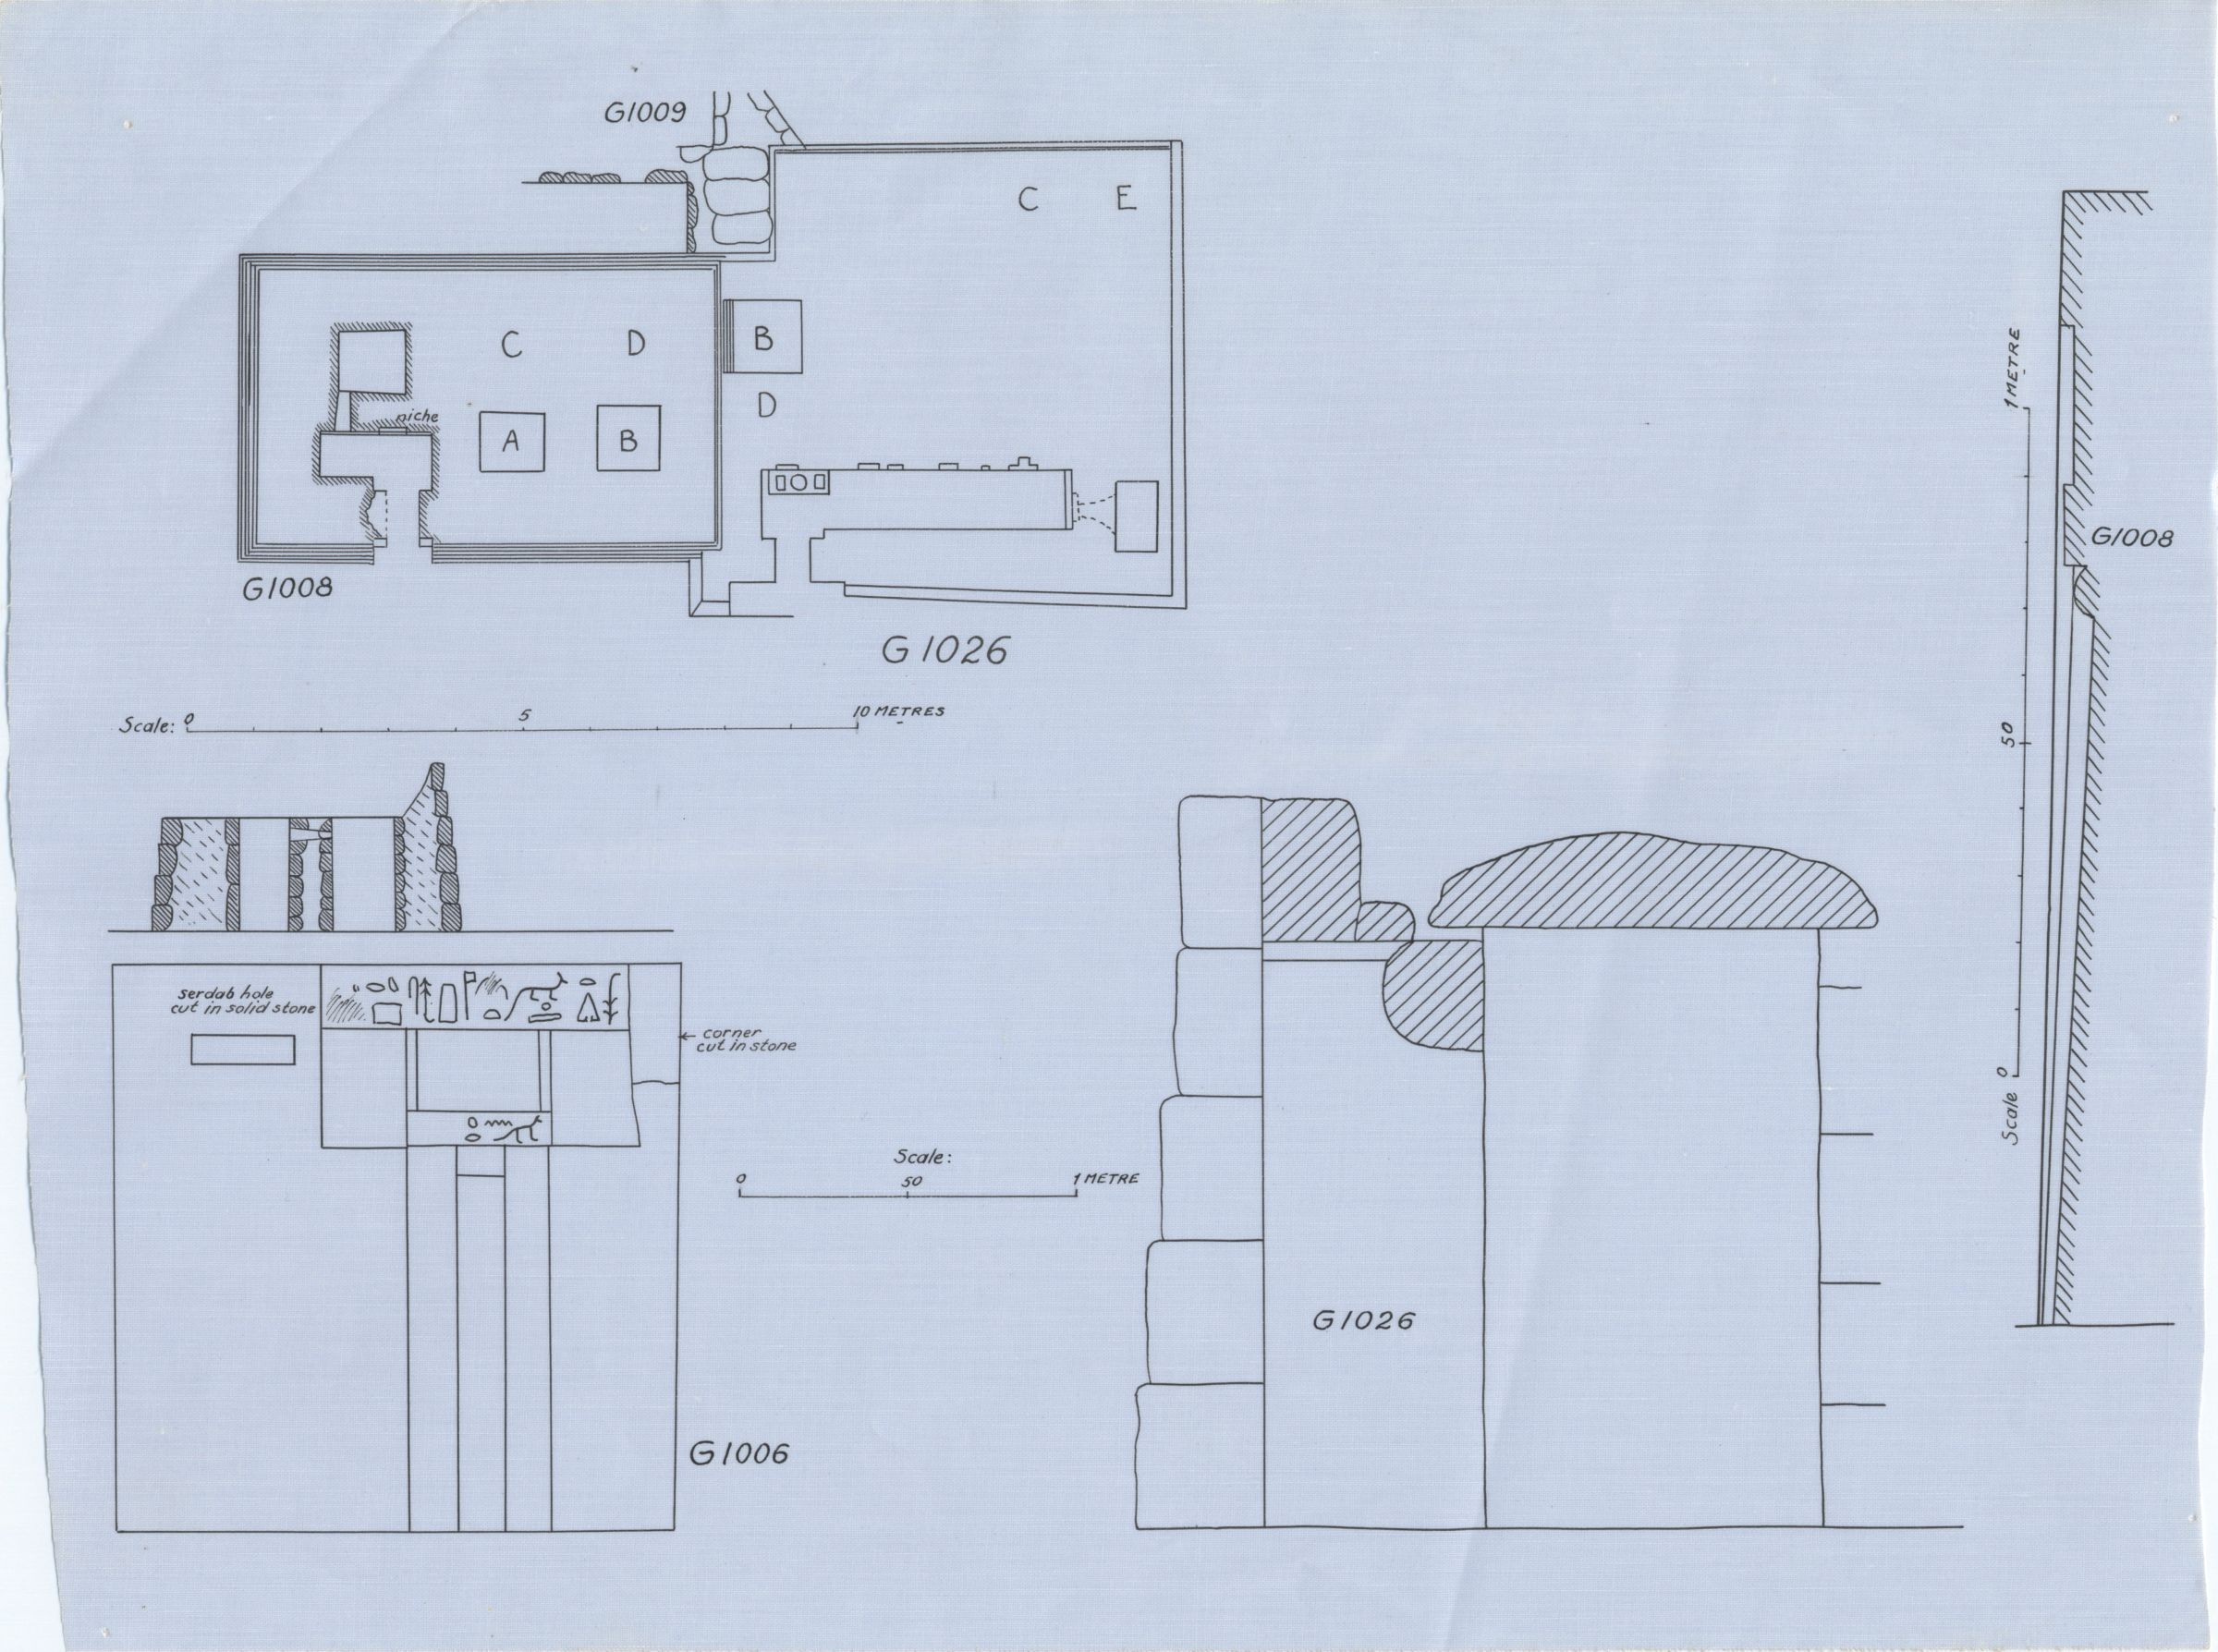 Maps and plans: Plan of G 1008 and G 1026 & Section of G 1026 & G 1008 false door